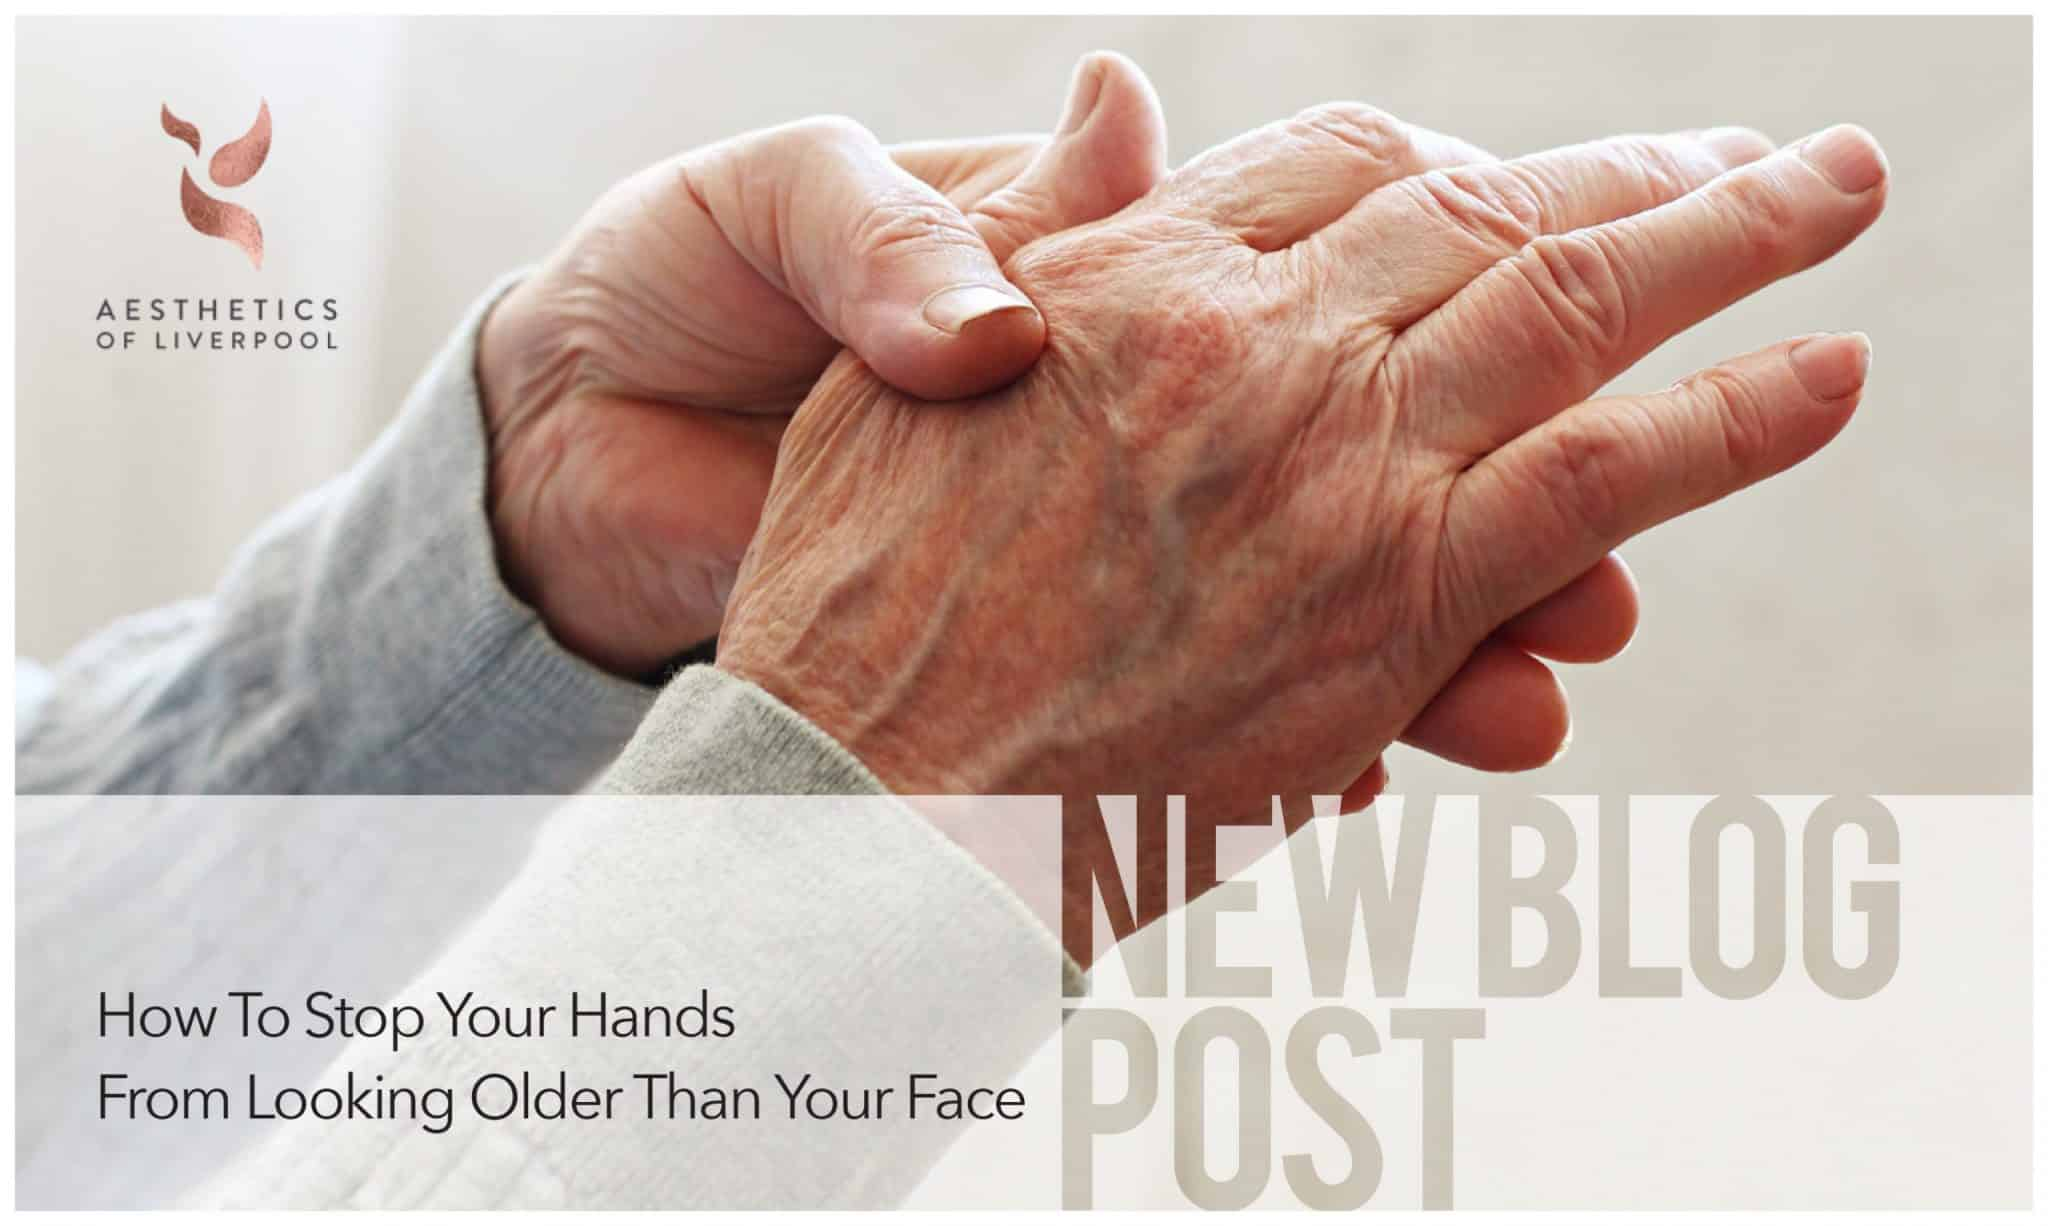 How To Stop Your Hands From Looking Older Than Your Face